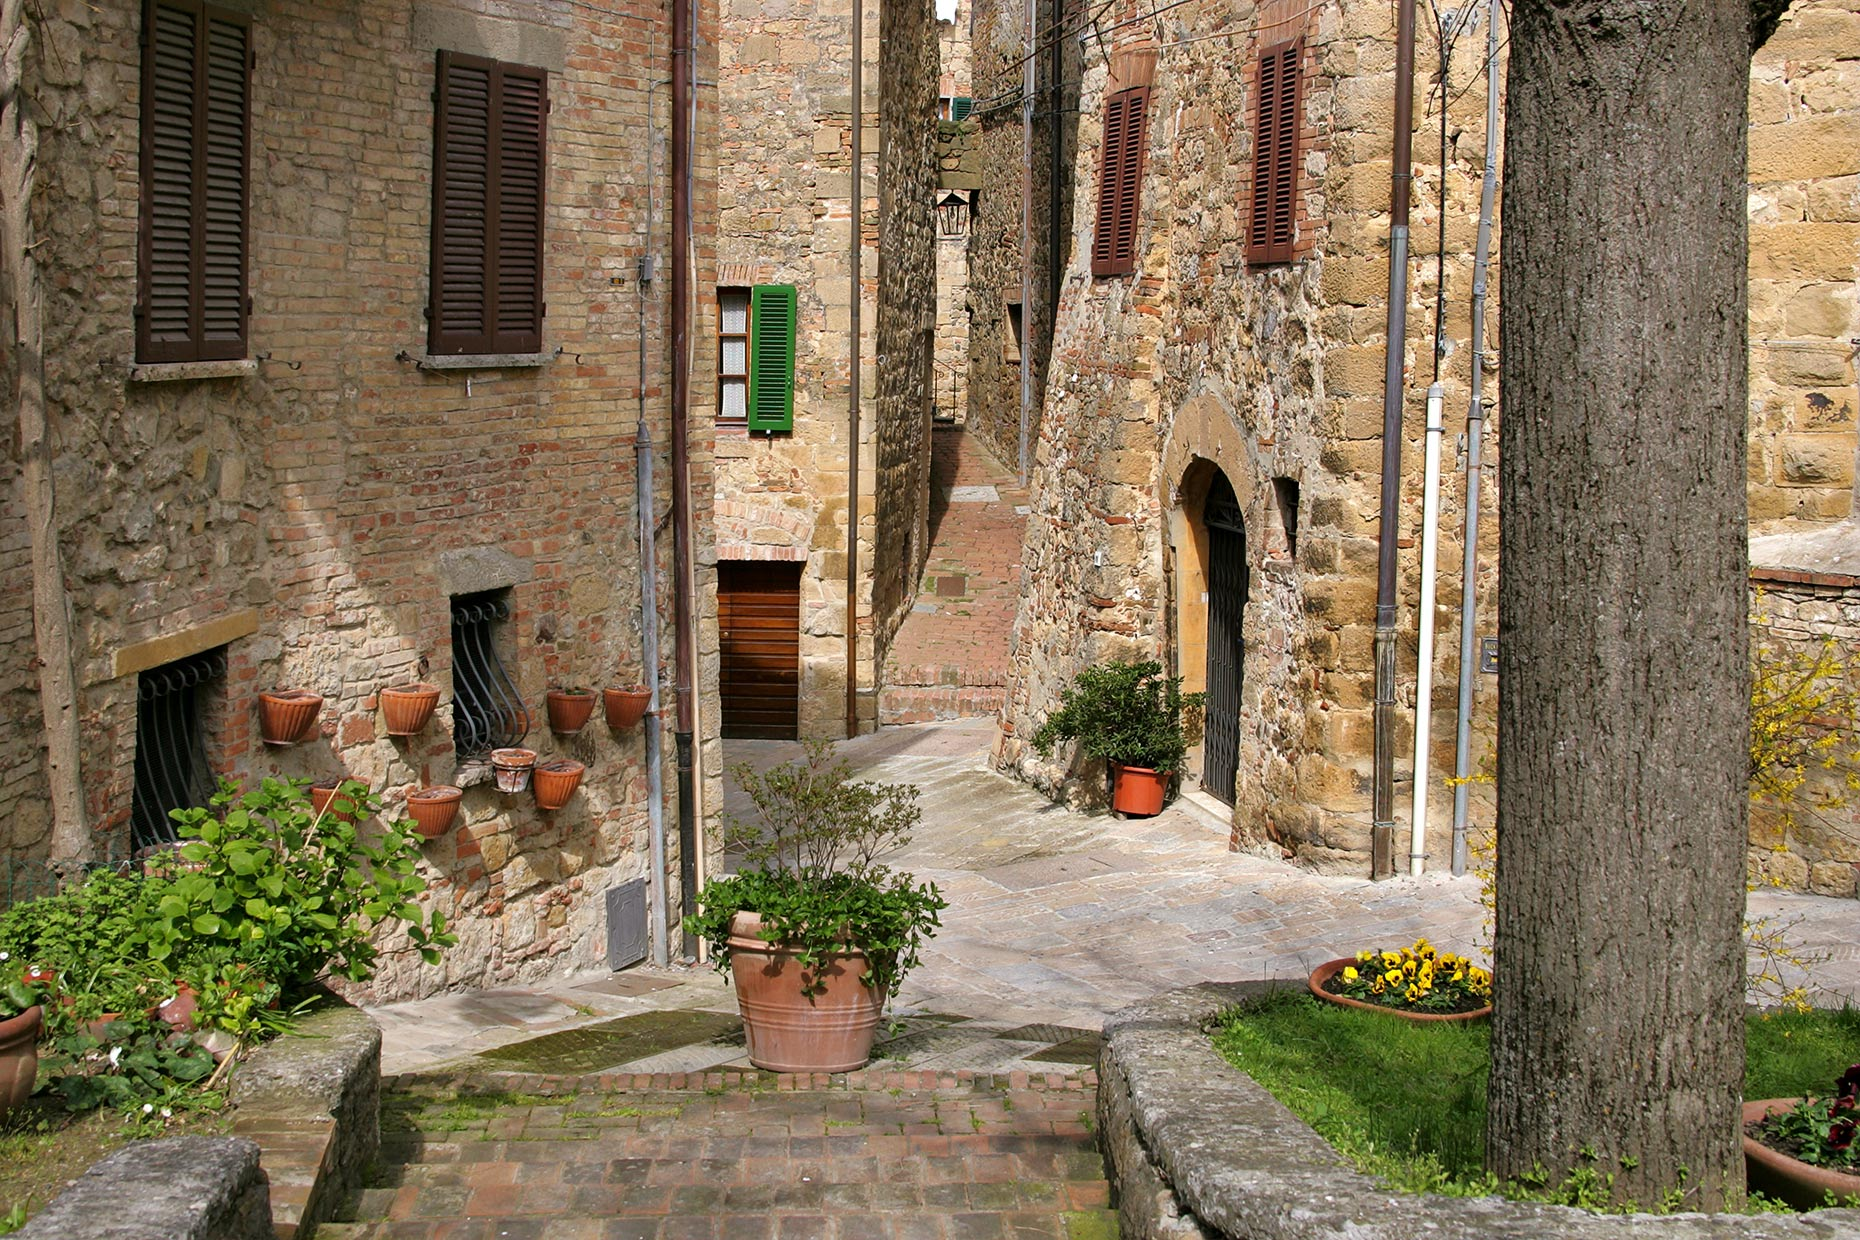 Tuscany-Italy-Travel-Photographer-Caryn-B-Davis